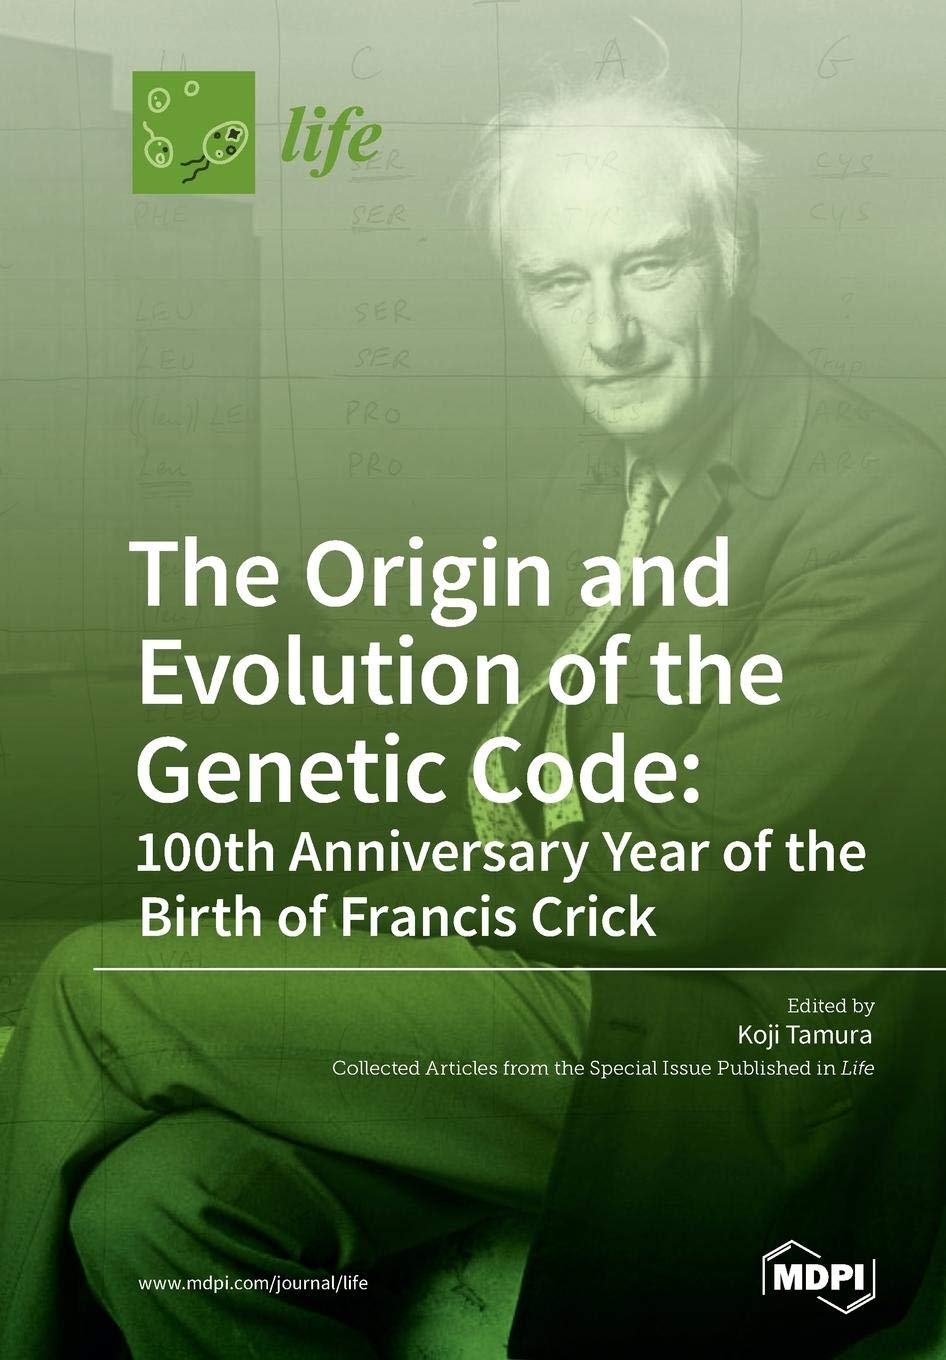 The Origin and Evolution of the Genetic Code: 100th Anniversary Year